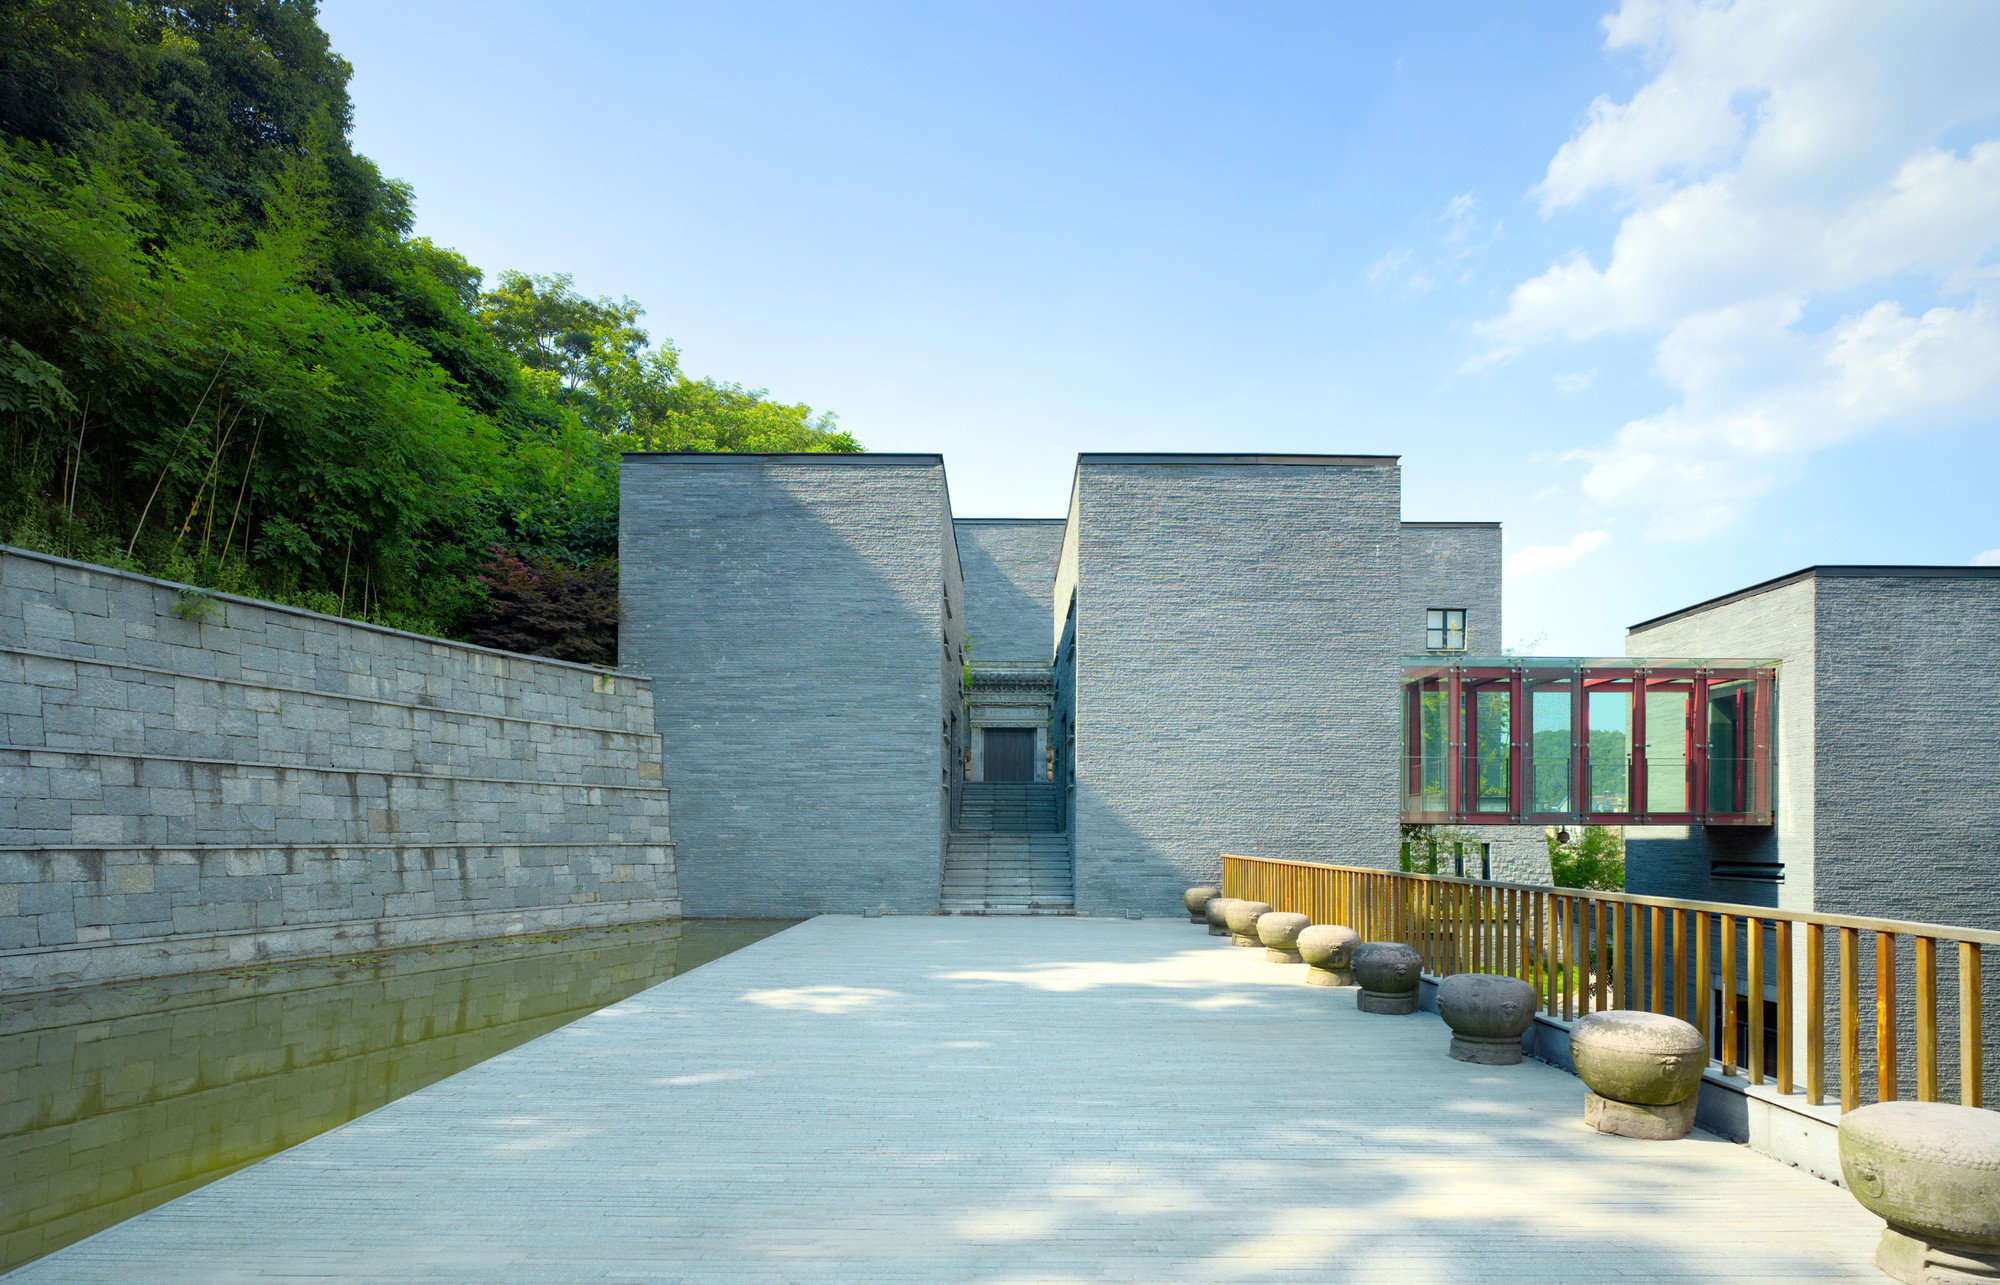 Baohua Chinese Painting Research Institute / Wang Deng Yue, © Savoye Architectural Photography